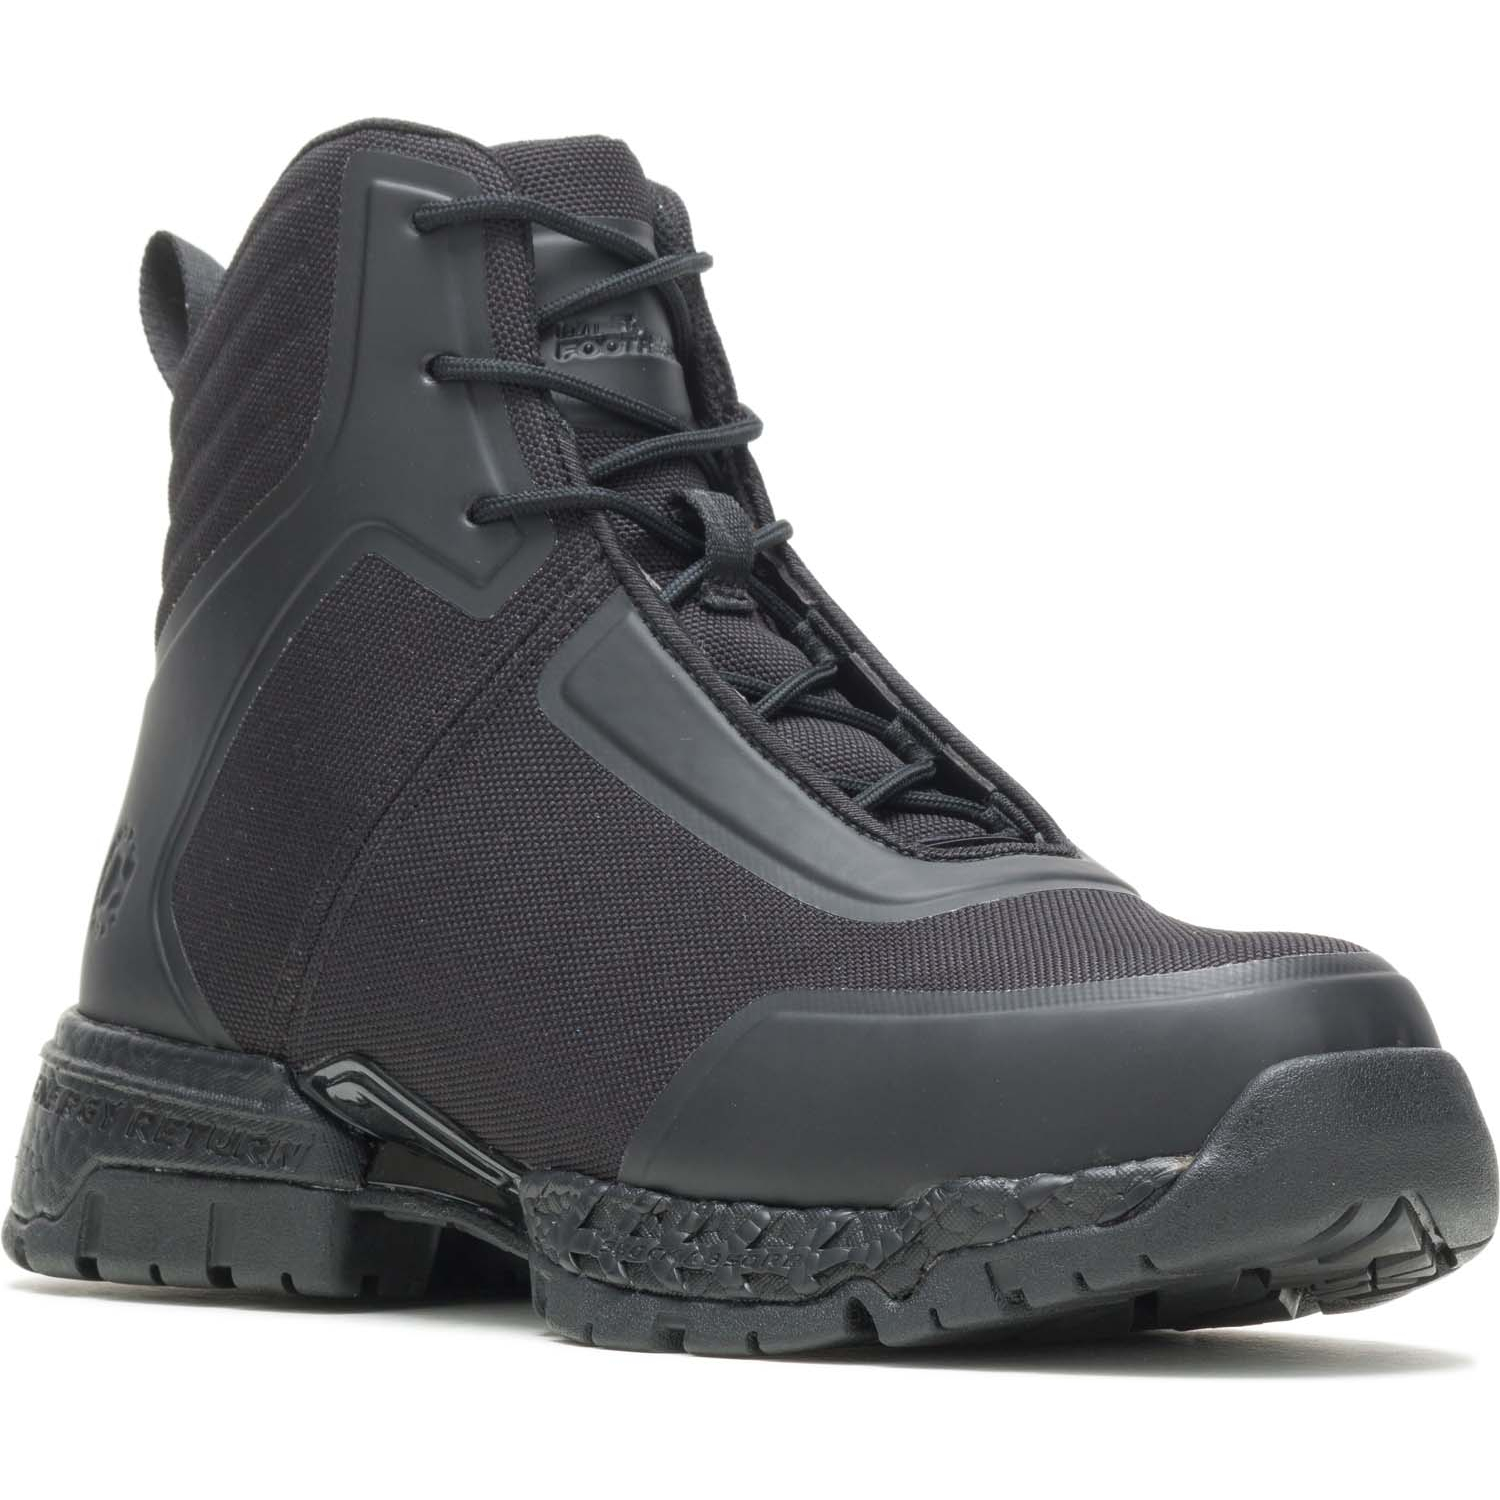 B00983-010 Grafters Nighthawk composite toe trainer safety shoe,front toe cap